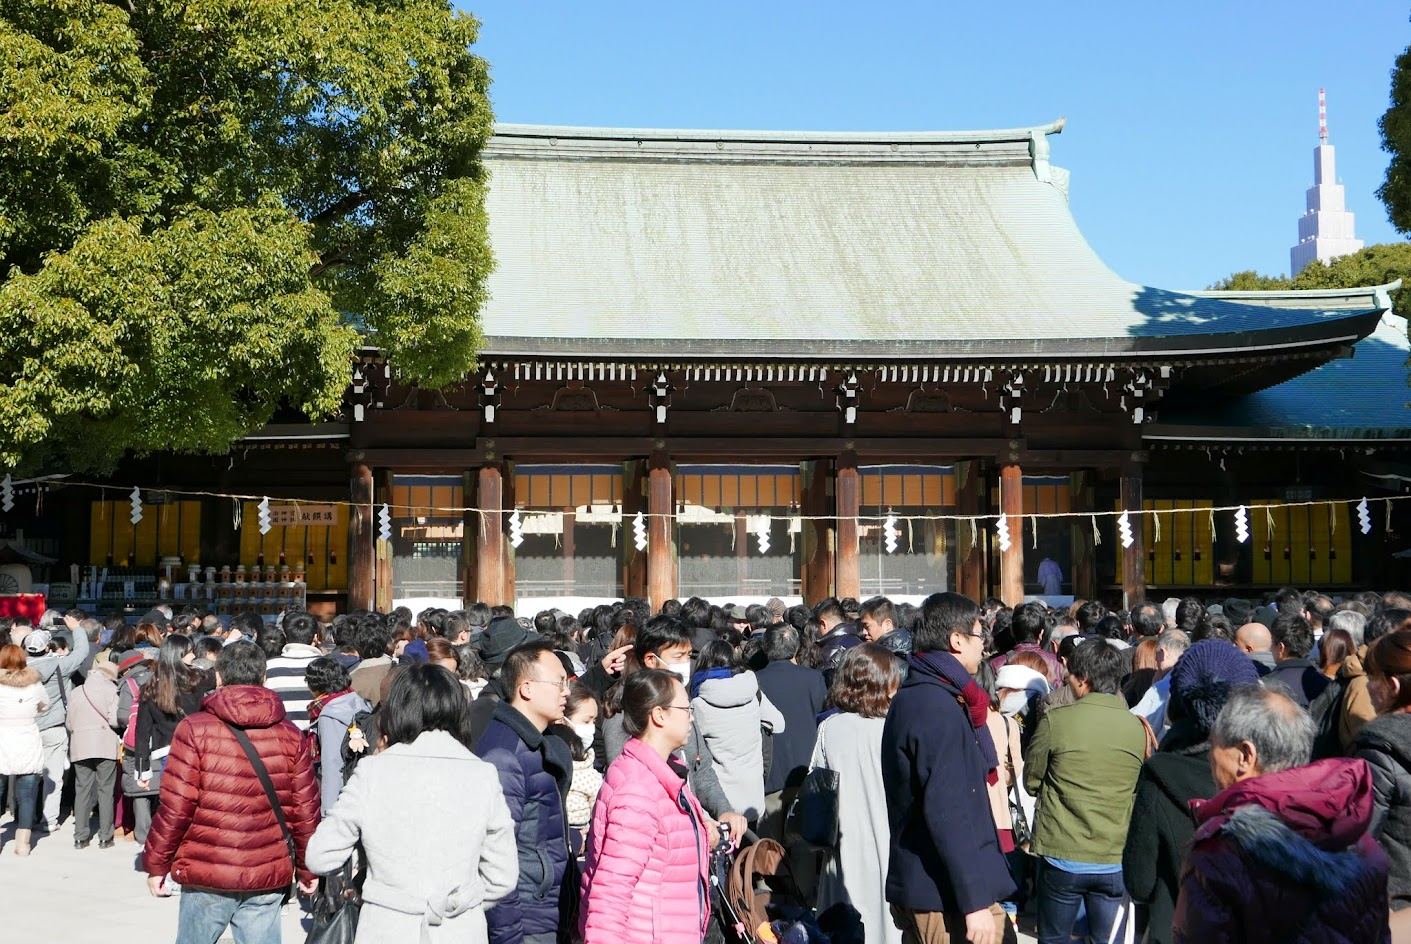 Hatsumode at Meiji Shrine on New Year's Day - there was some long money flinging forward from the crowds where you see people standing and facing the shrine, vs the people you see in front of me who are moving to the side gates where the ema boards and other purchases of Omamori